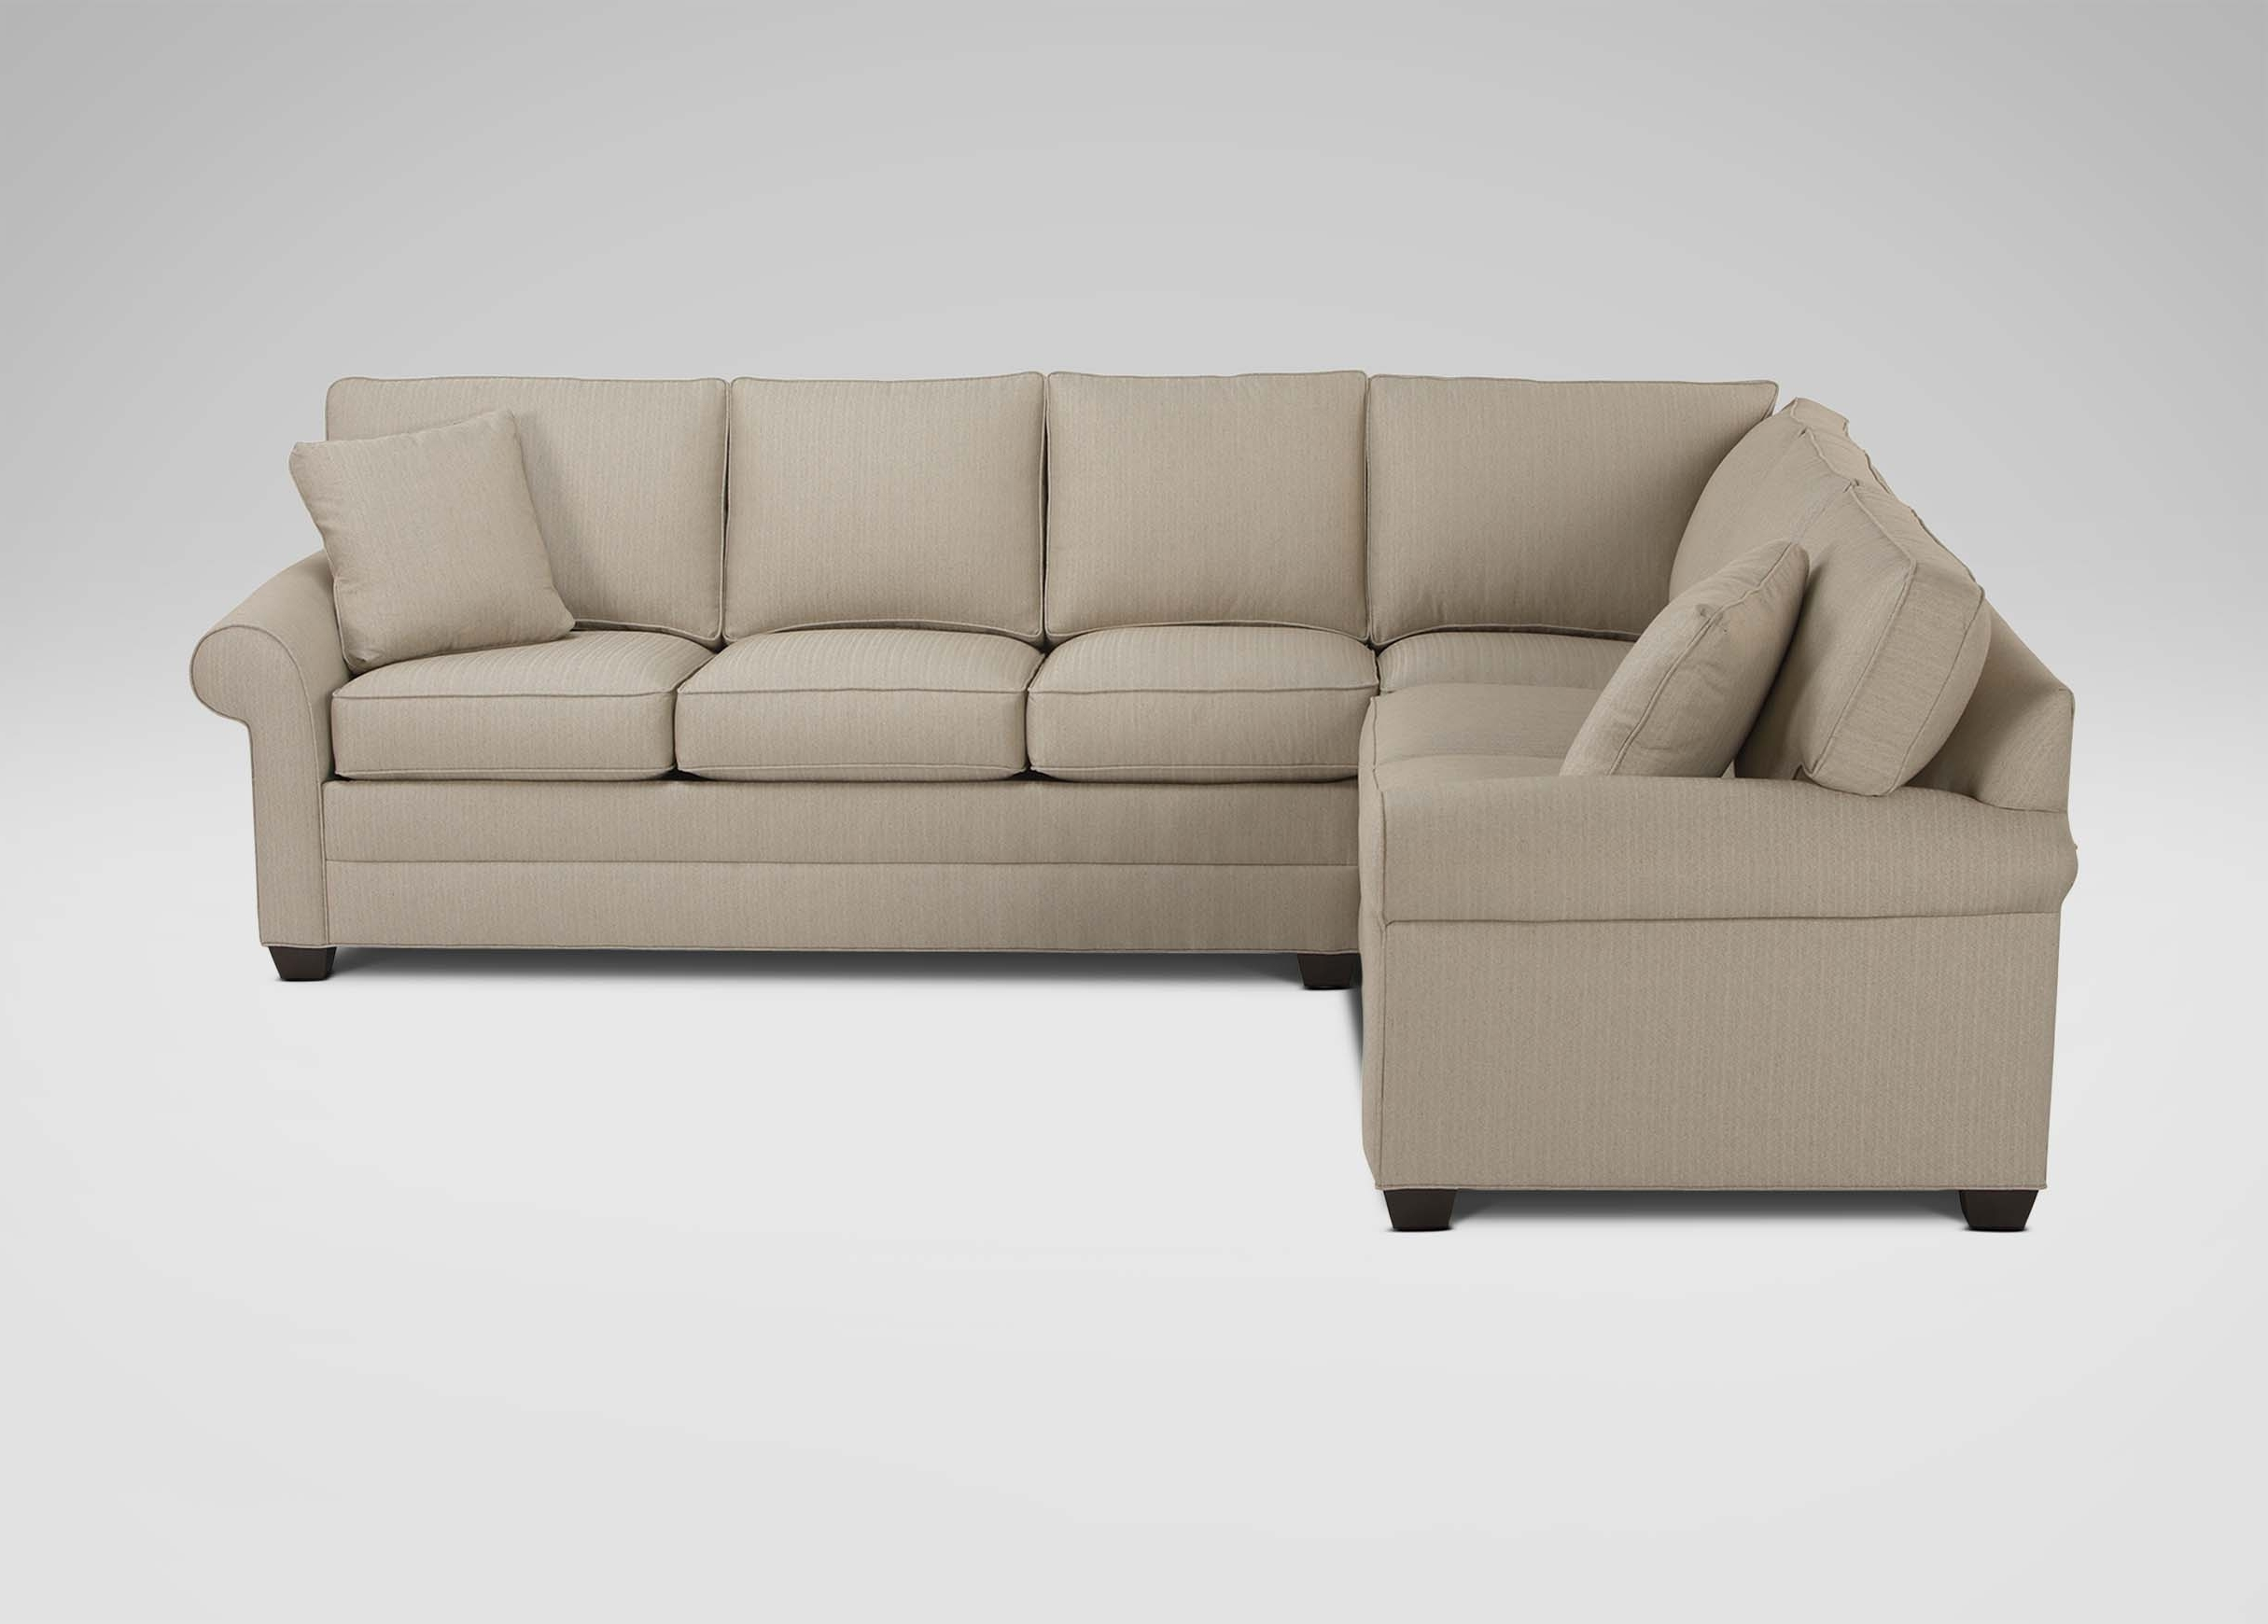 Sectional Sofas At Ethan Allen With Regard To Popular Bennett Roll Arm Sectional (View 2 of 15)